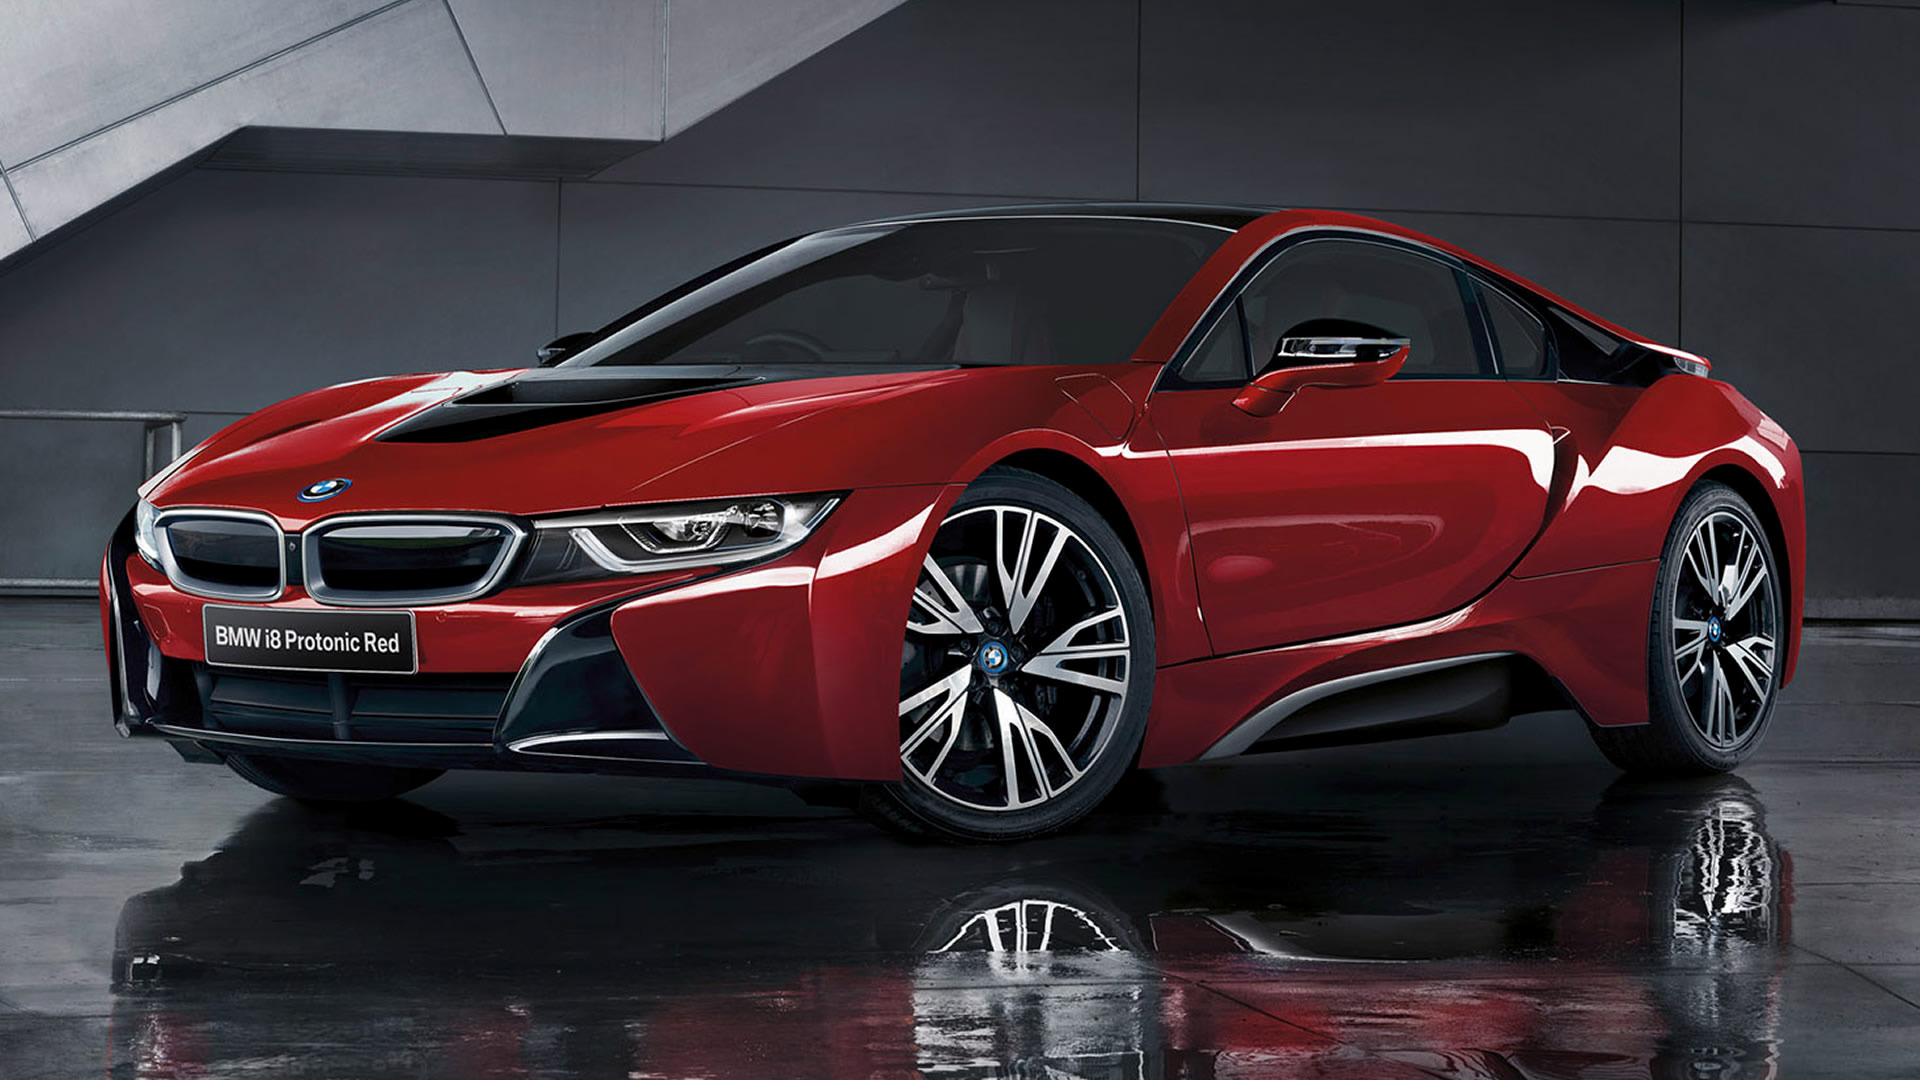 Future Car Wallpaper Hd For Desktop Bmw I8 Protonic Red Edition 2016 Wallpapers And Hd